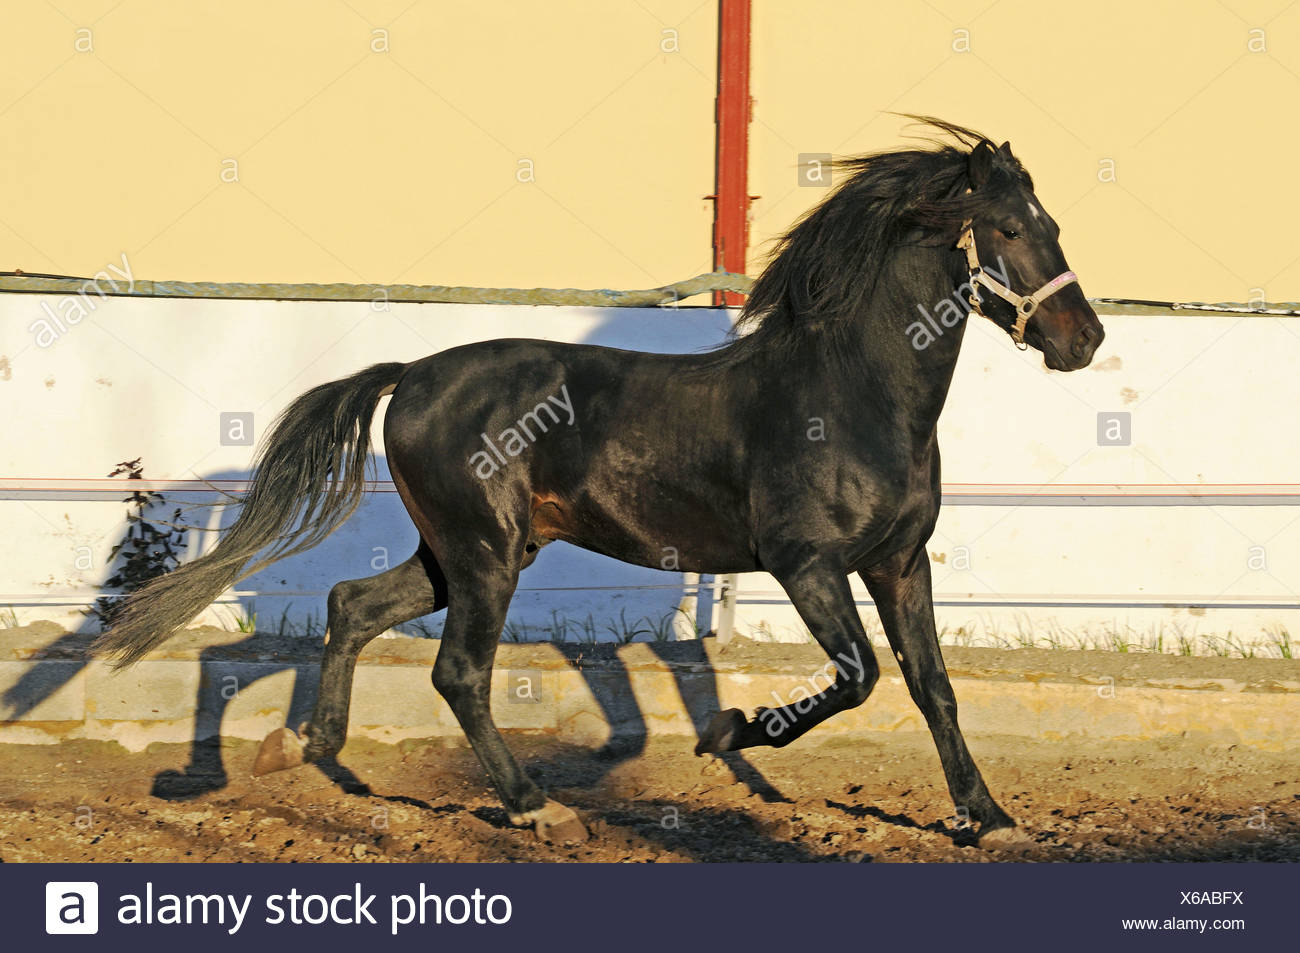 Walking Horse - Stock Image